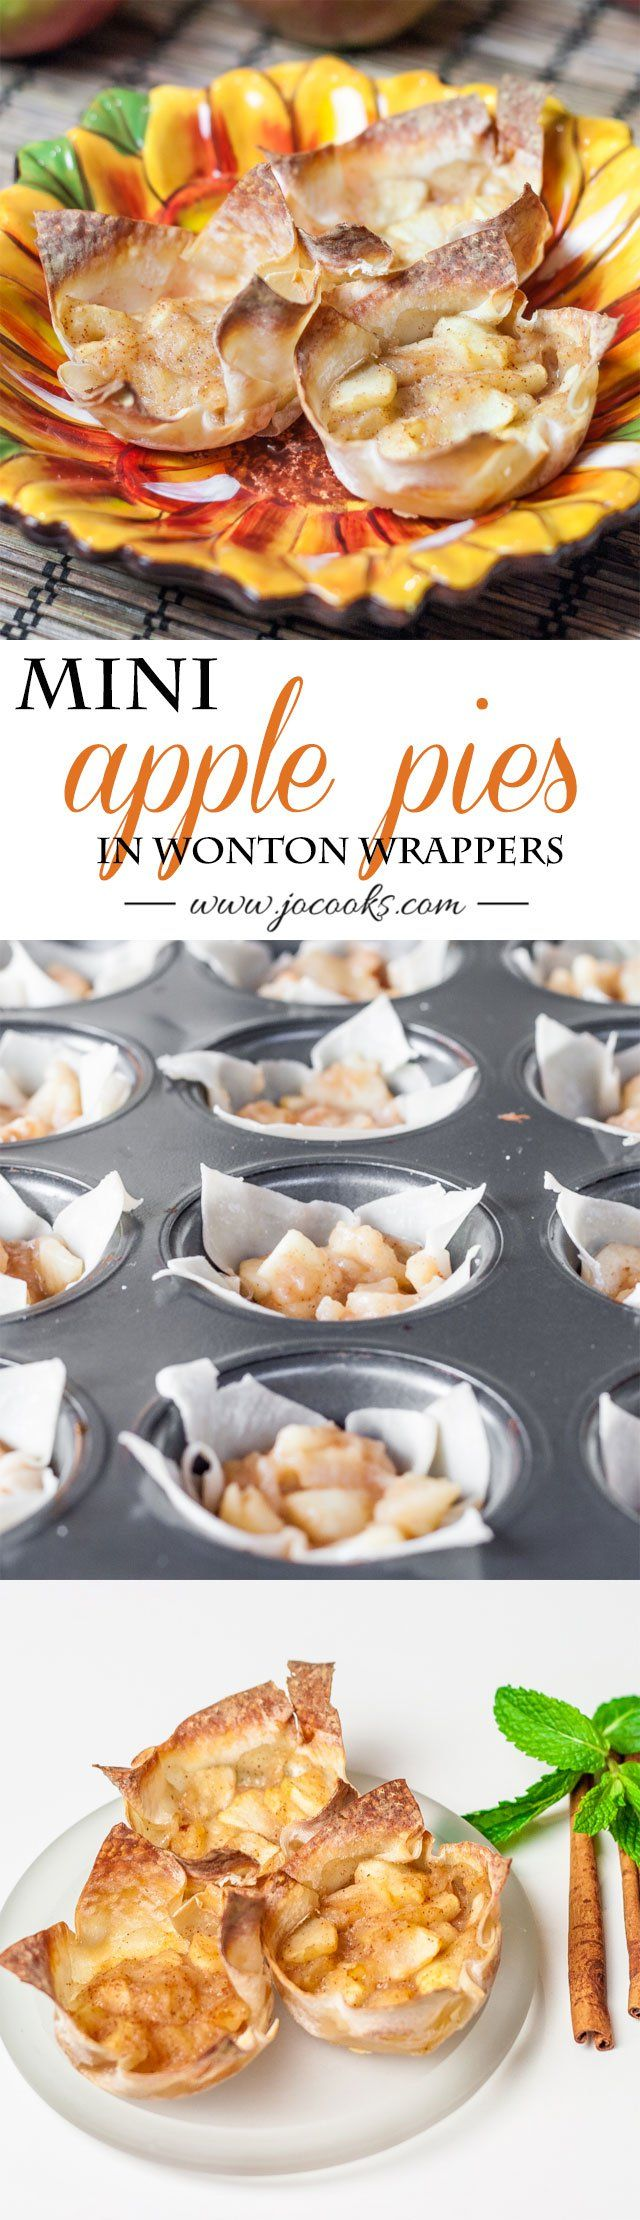 Mini Apple Pies in Wonton Wrappers (apple desserts weight watchers)